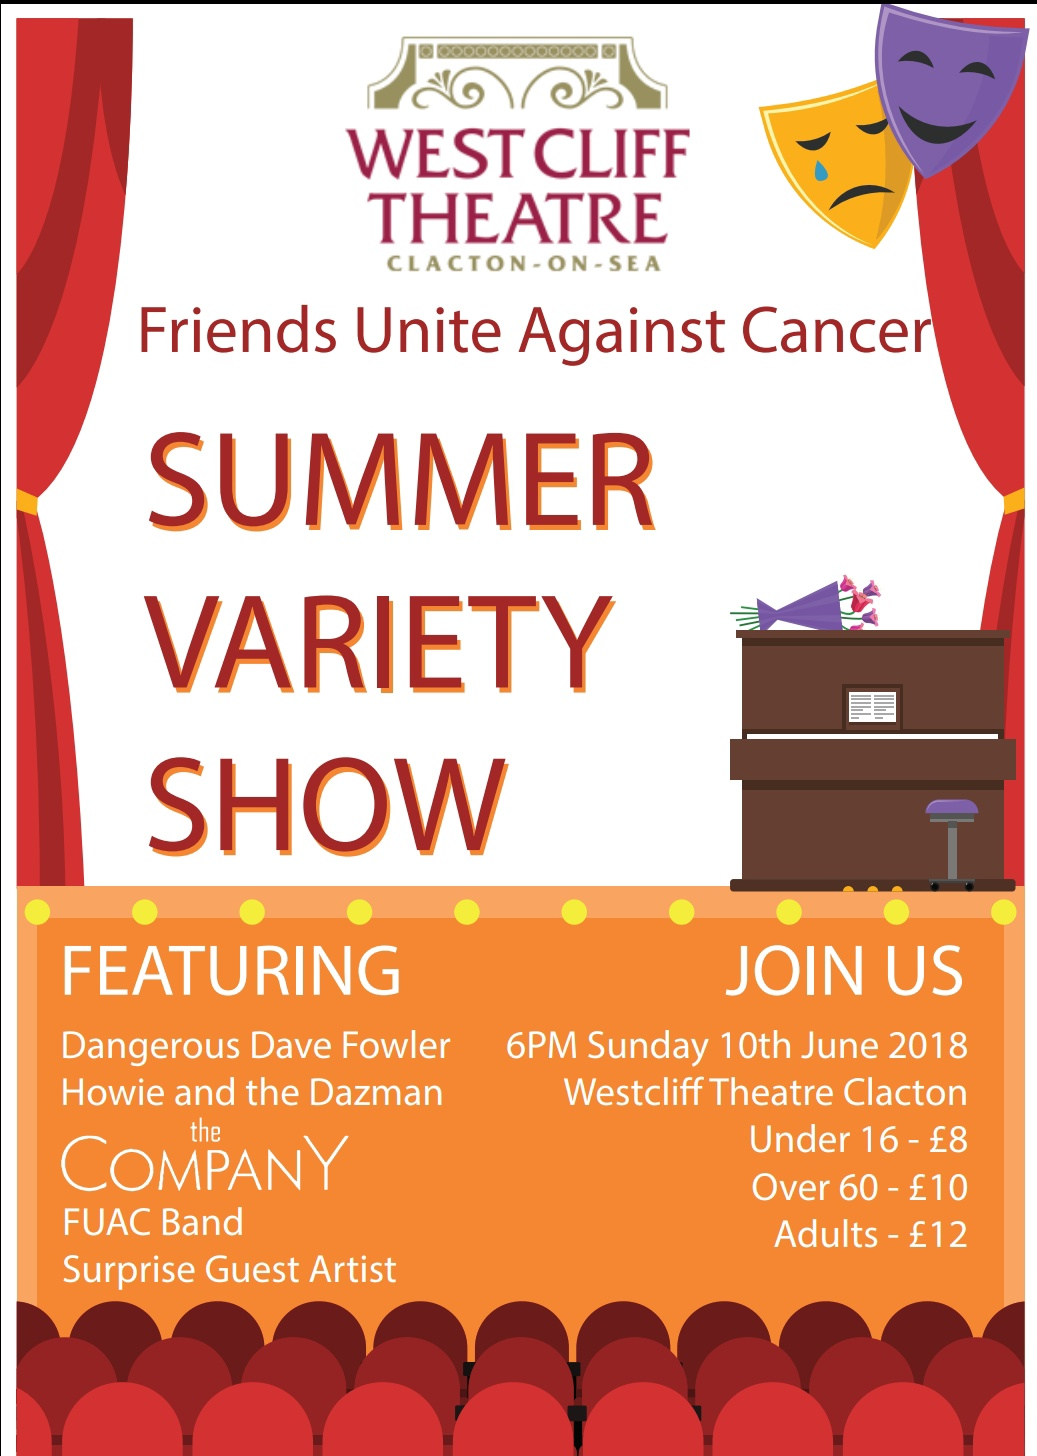 Friends Unite Against Cancer summer variety show 2018